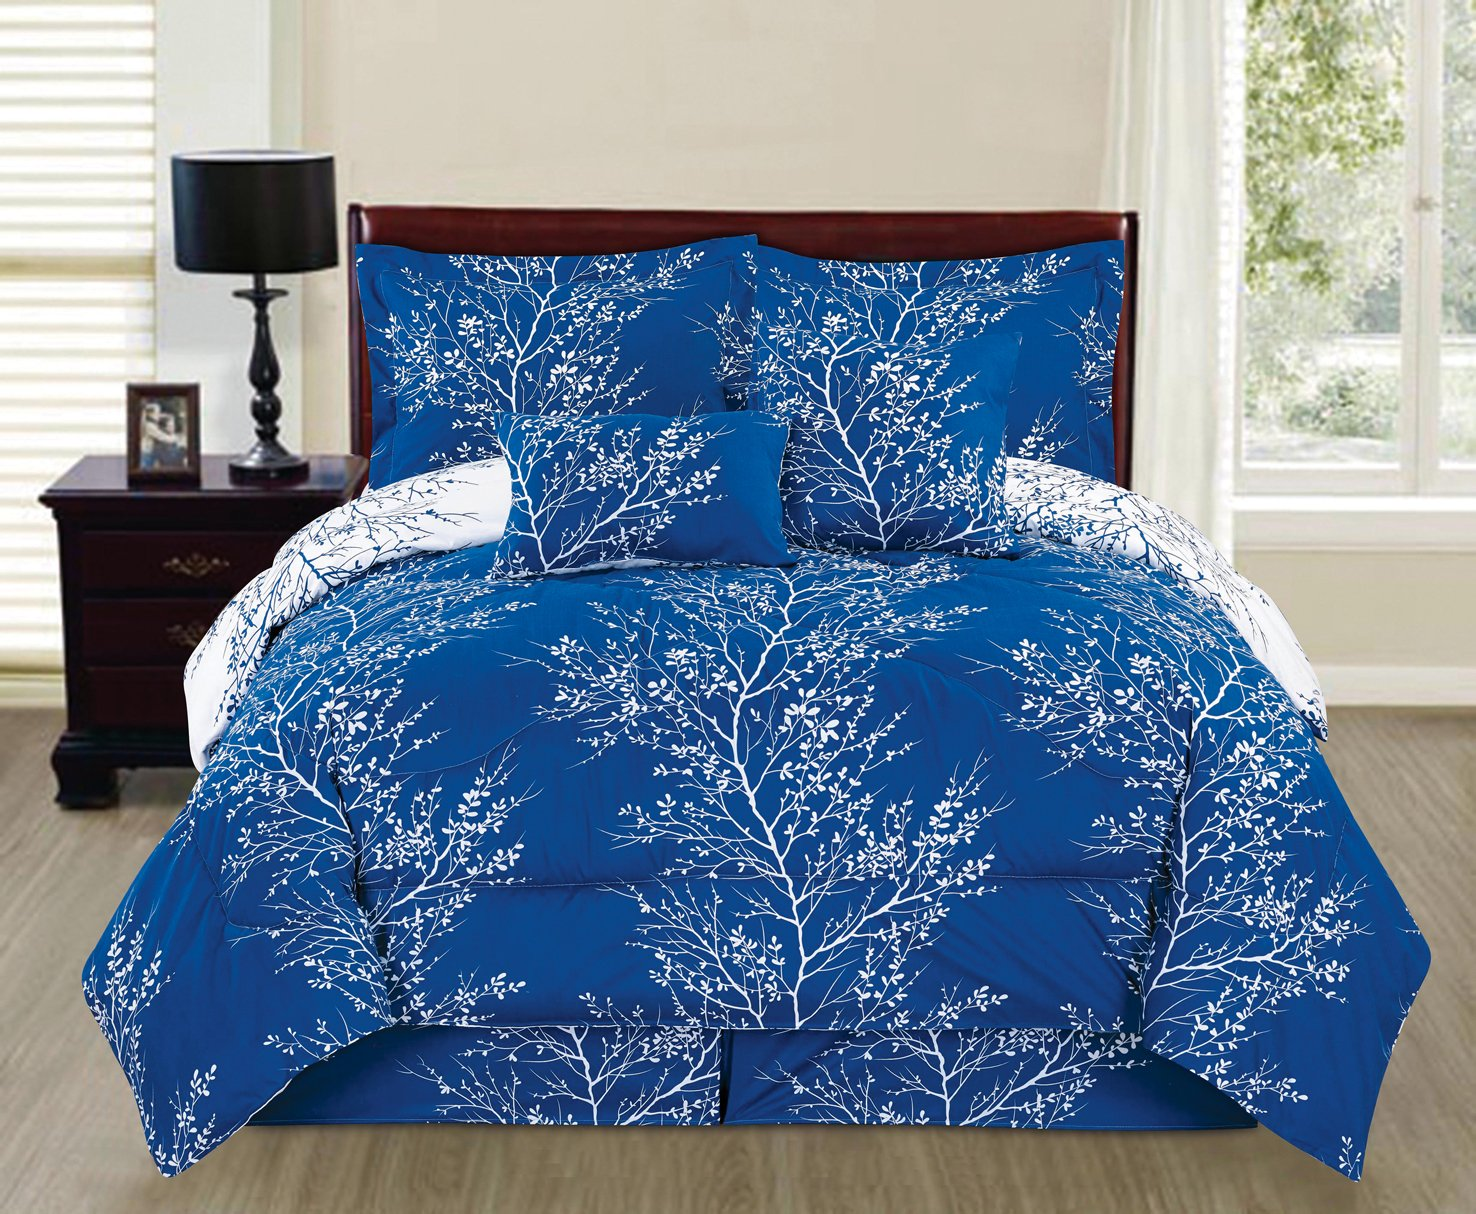 comforter queen victoria home p mocha ravenna piece sets damask set blue q light bedding lavish studio burgundy full